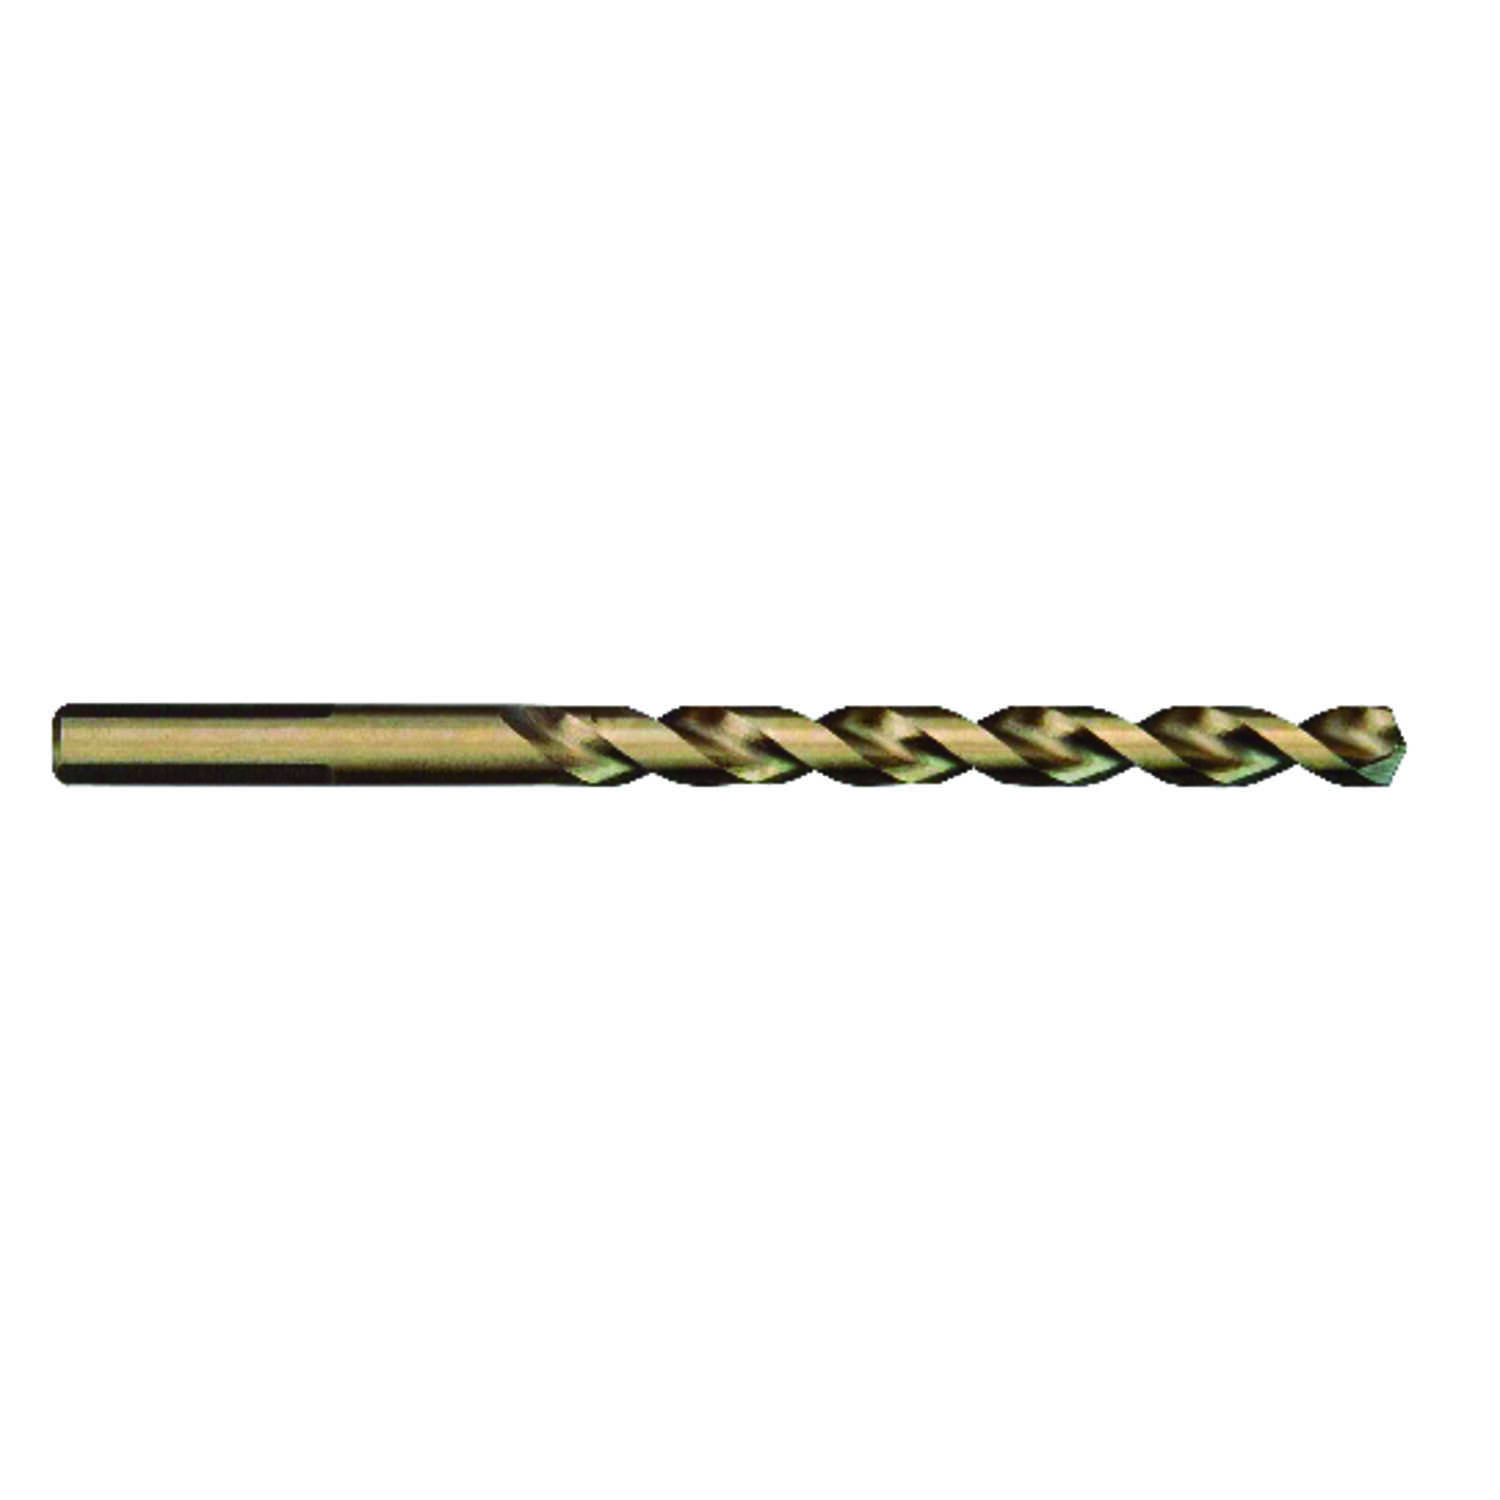 Milwaukee  RED HELIX  1/2 in. Dia. x 5 in. L Cobalt Steel  THUNDERBOLT  Drill Bit  3-Flat Shank  1 p